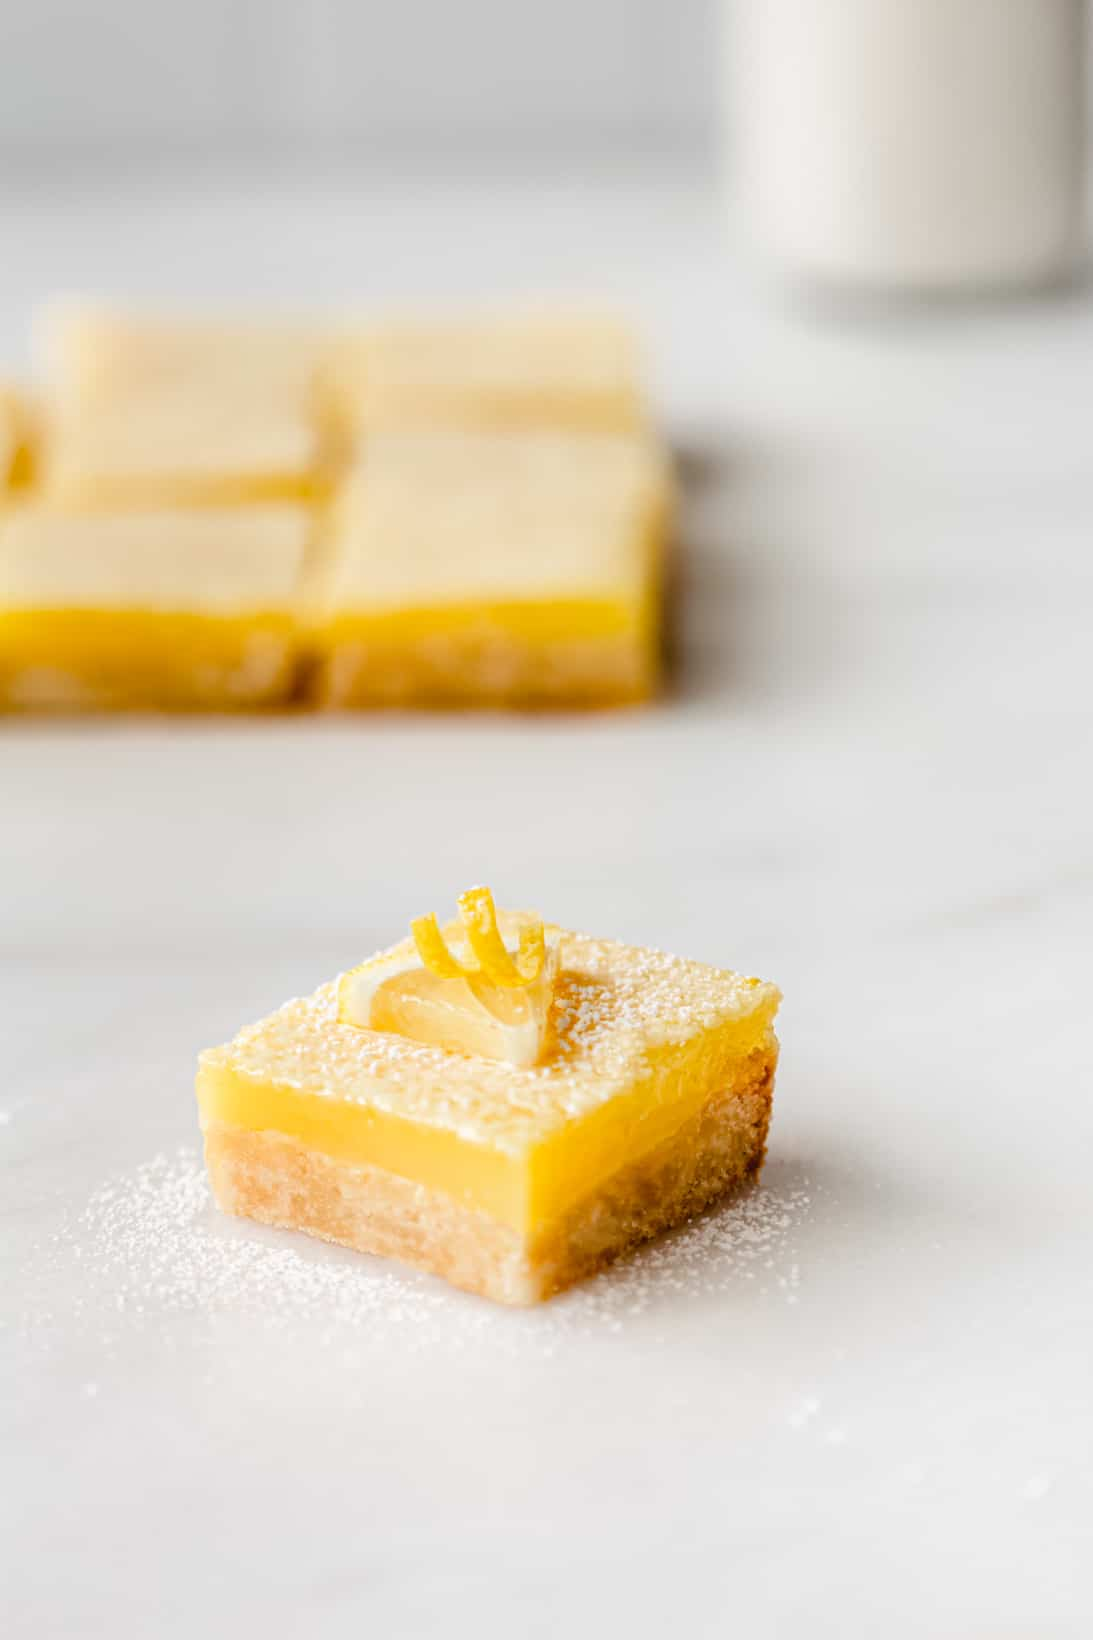 Lemon bars with milk in the background.